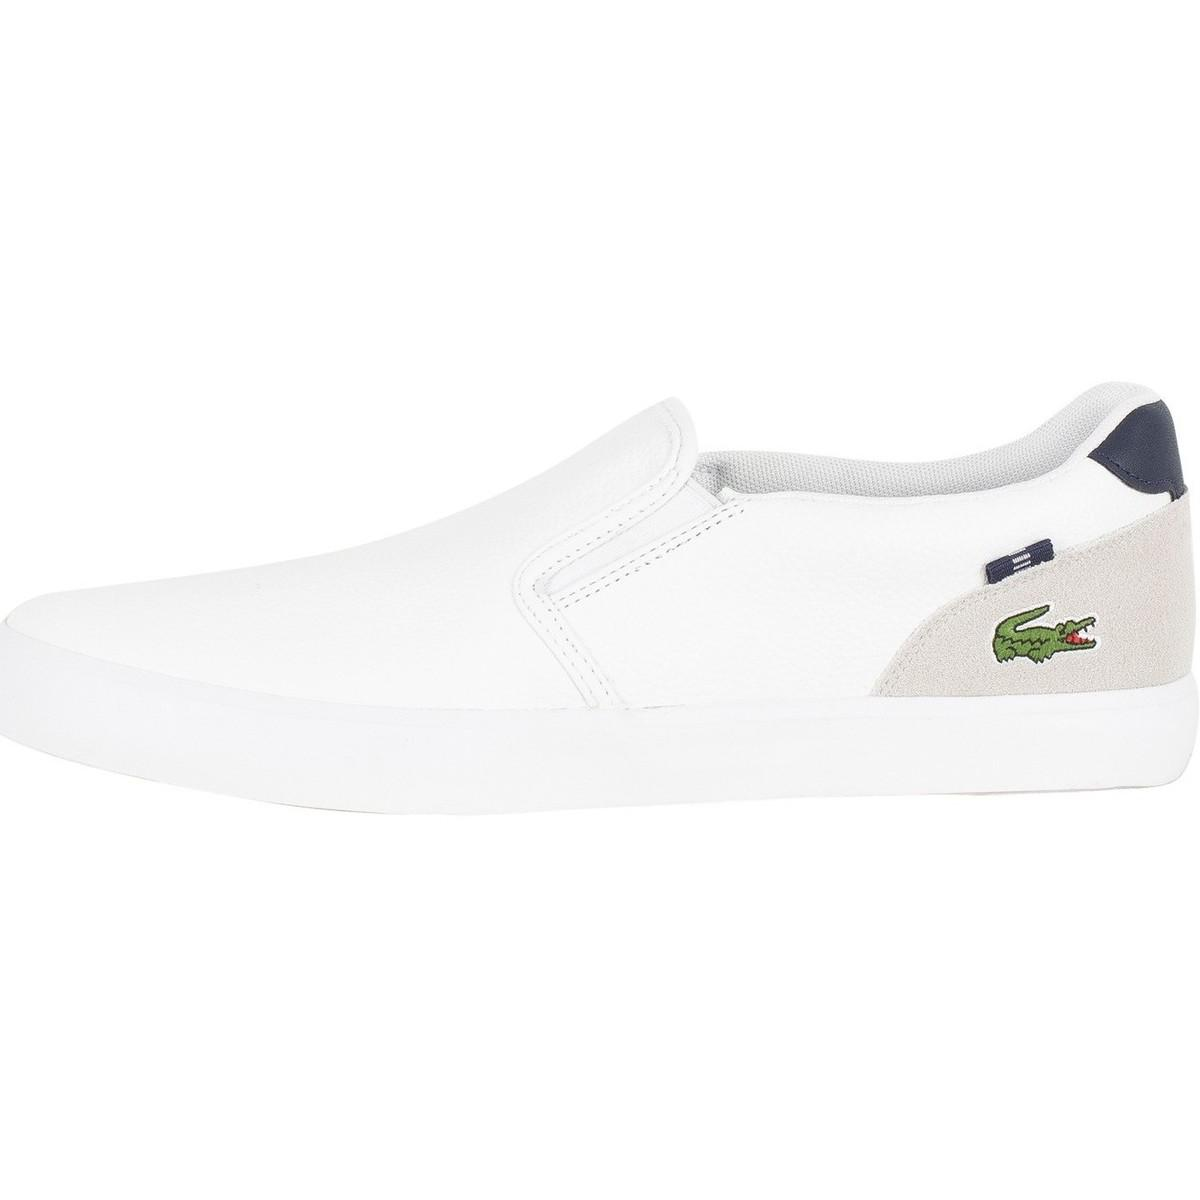 Lacoste Men Shoes Jouer Slip 318 2 White Leather Casual Sneakers Shoes NEW